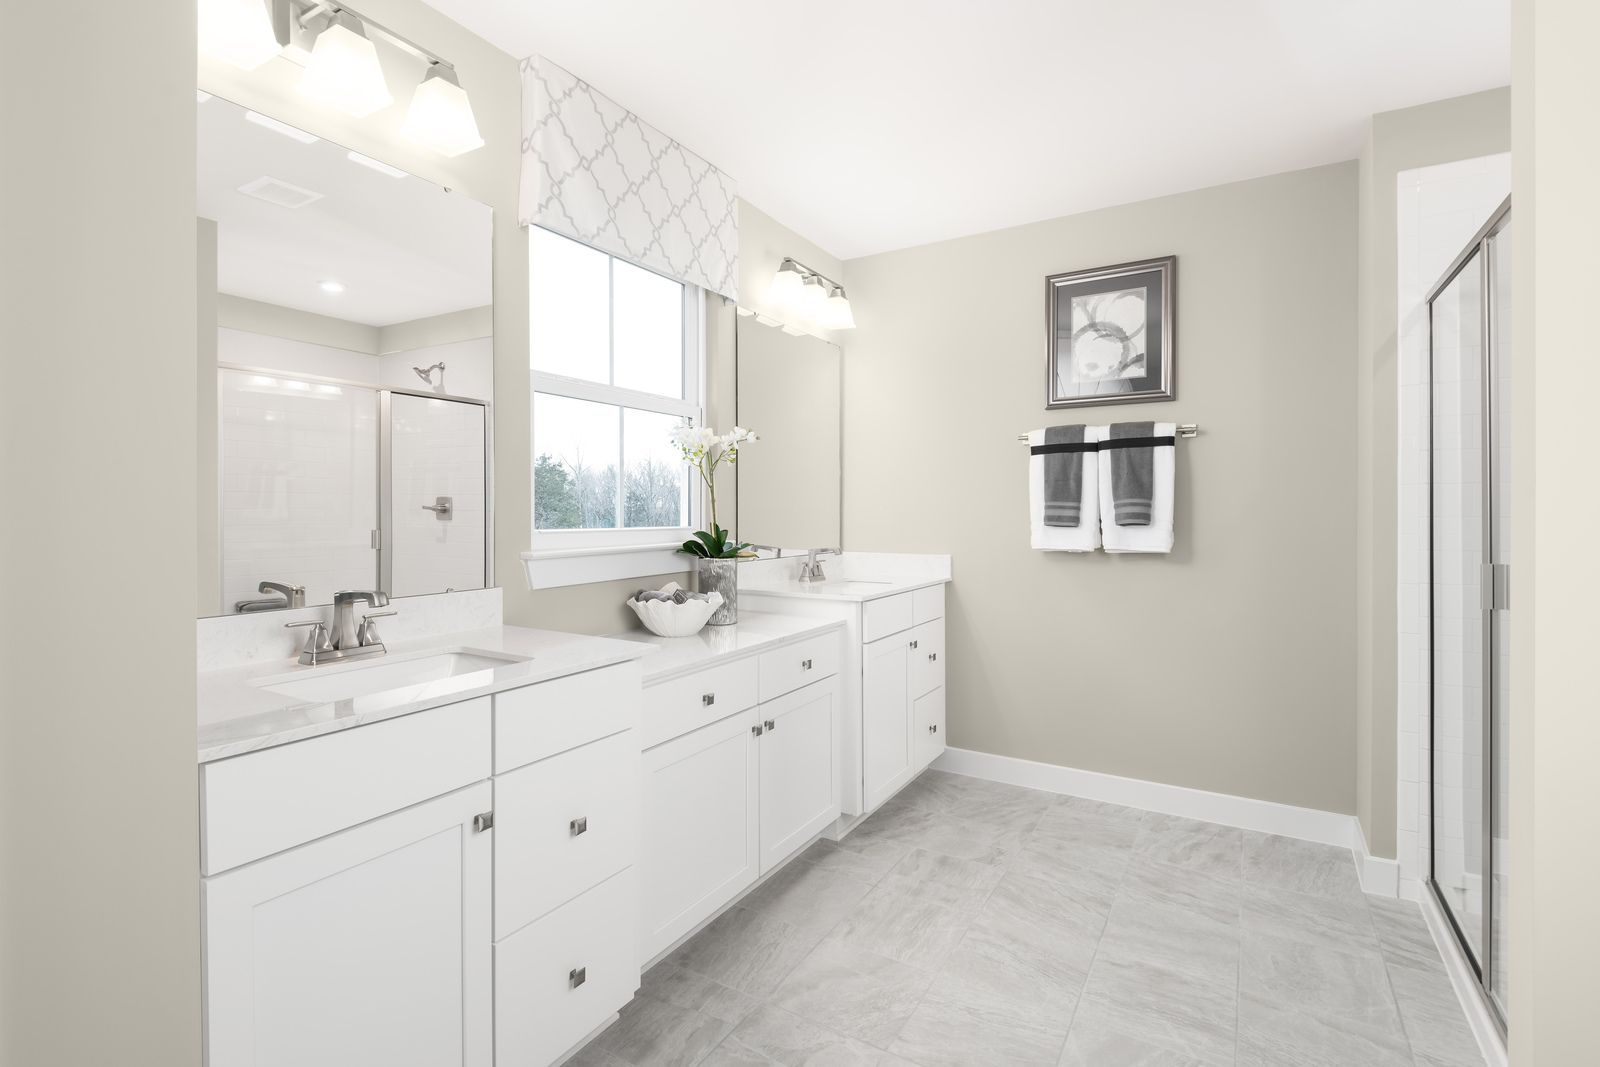 Bathroom featured in the Seneca By Ryan Homes in Cleveland, OH